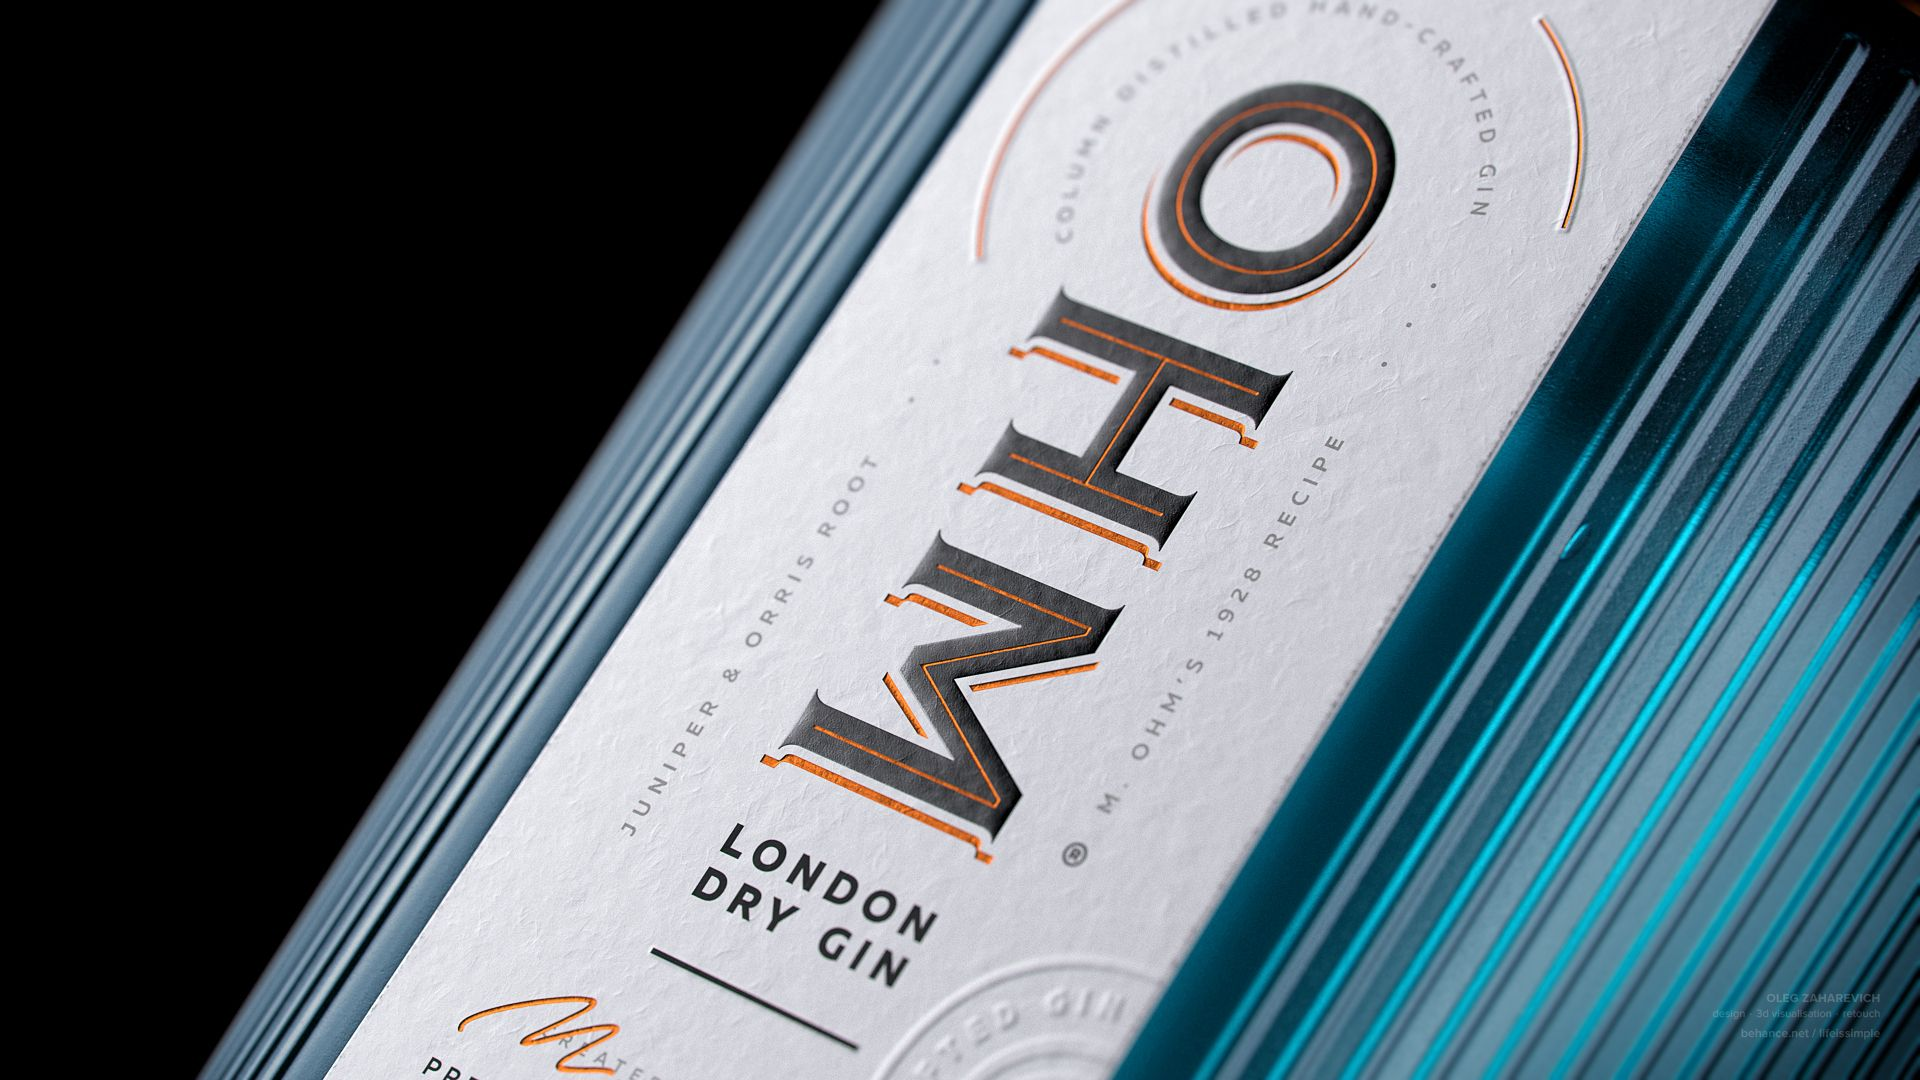 OHM London Dry Gin Is Sure To Be The Hero Of Your